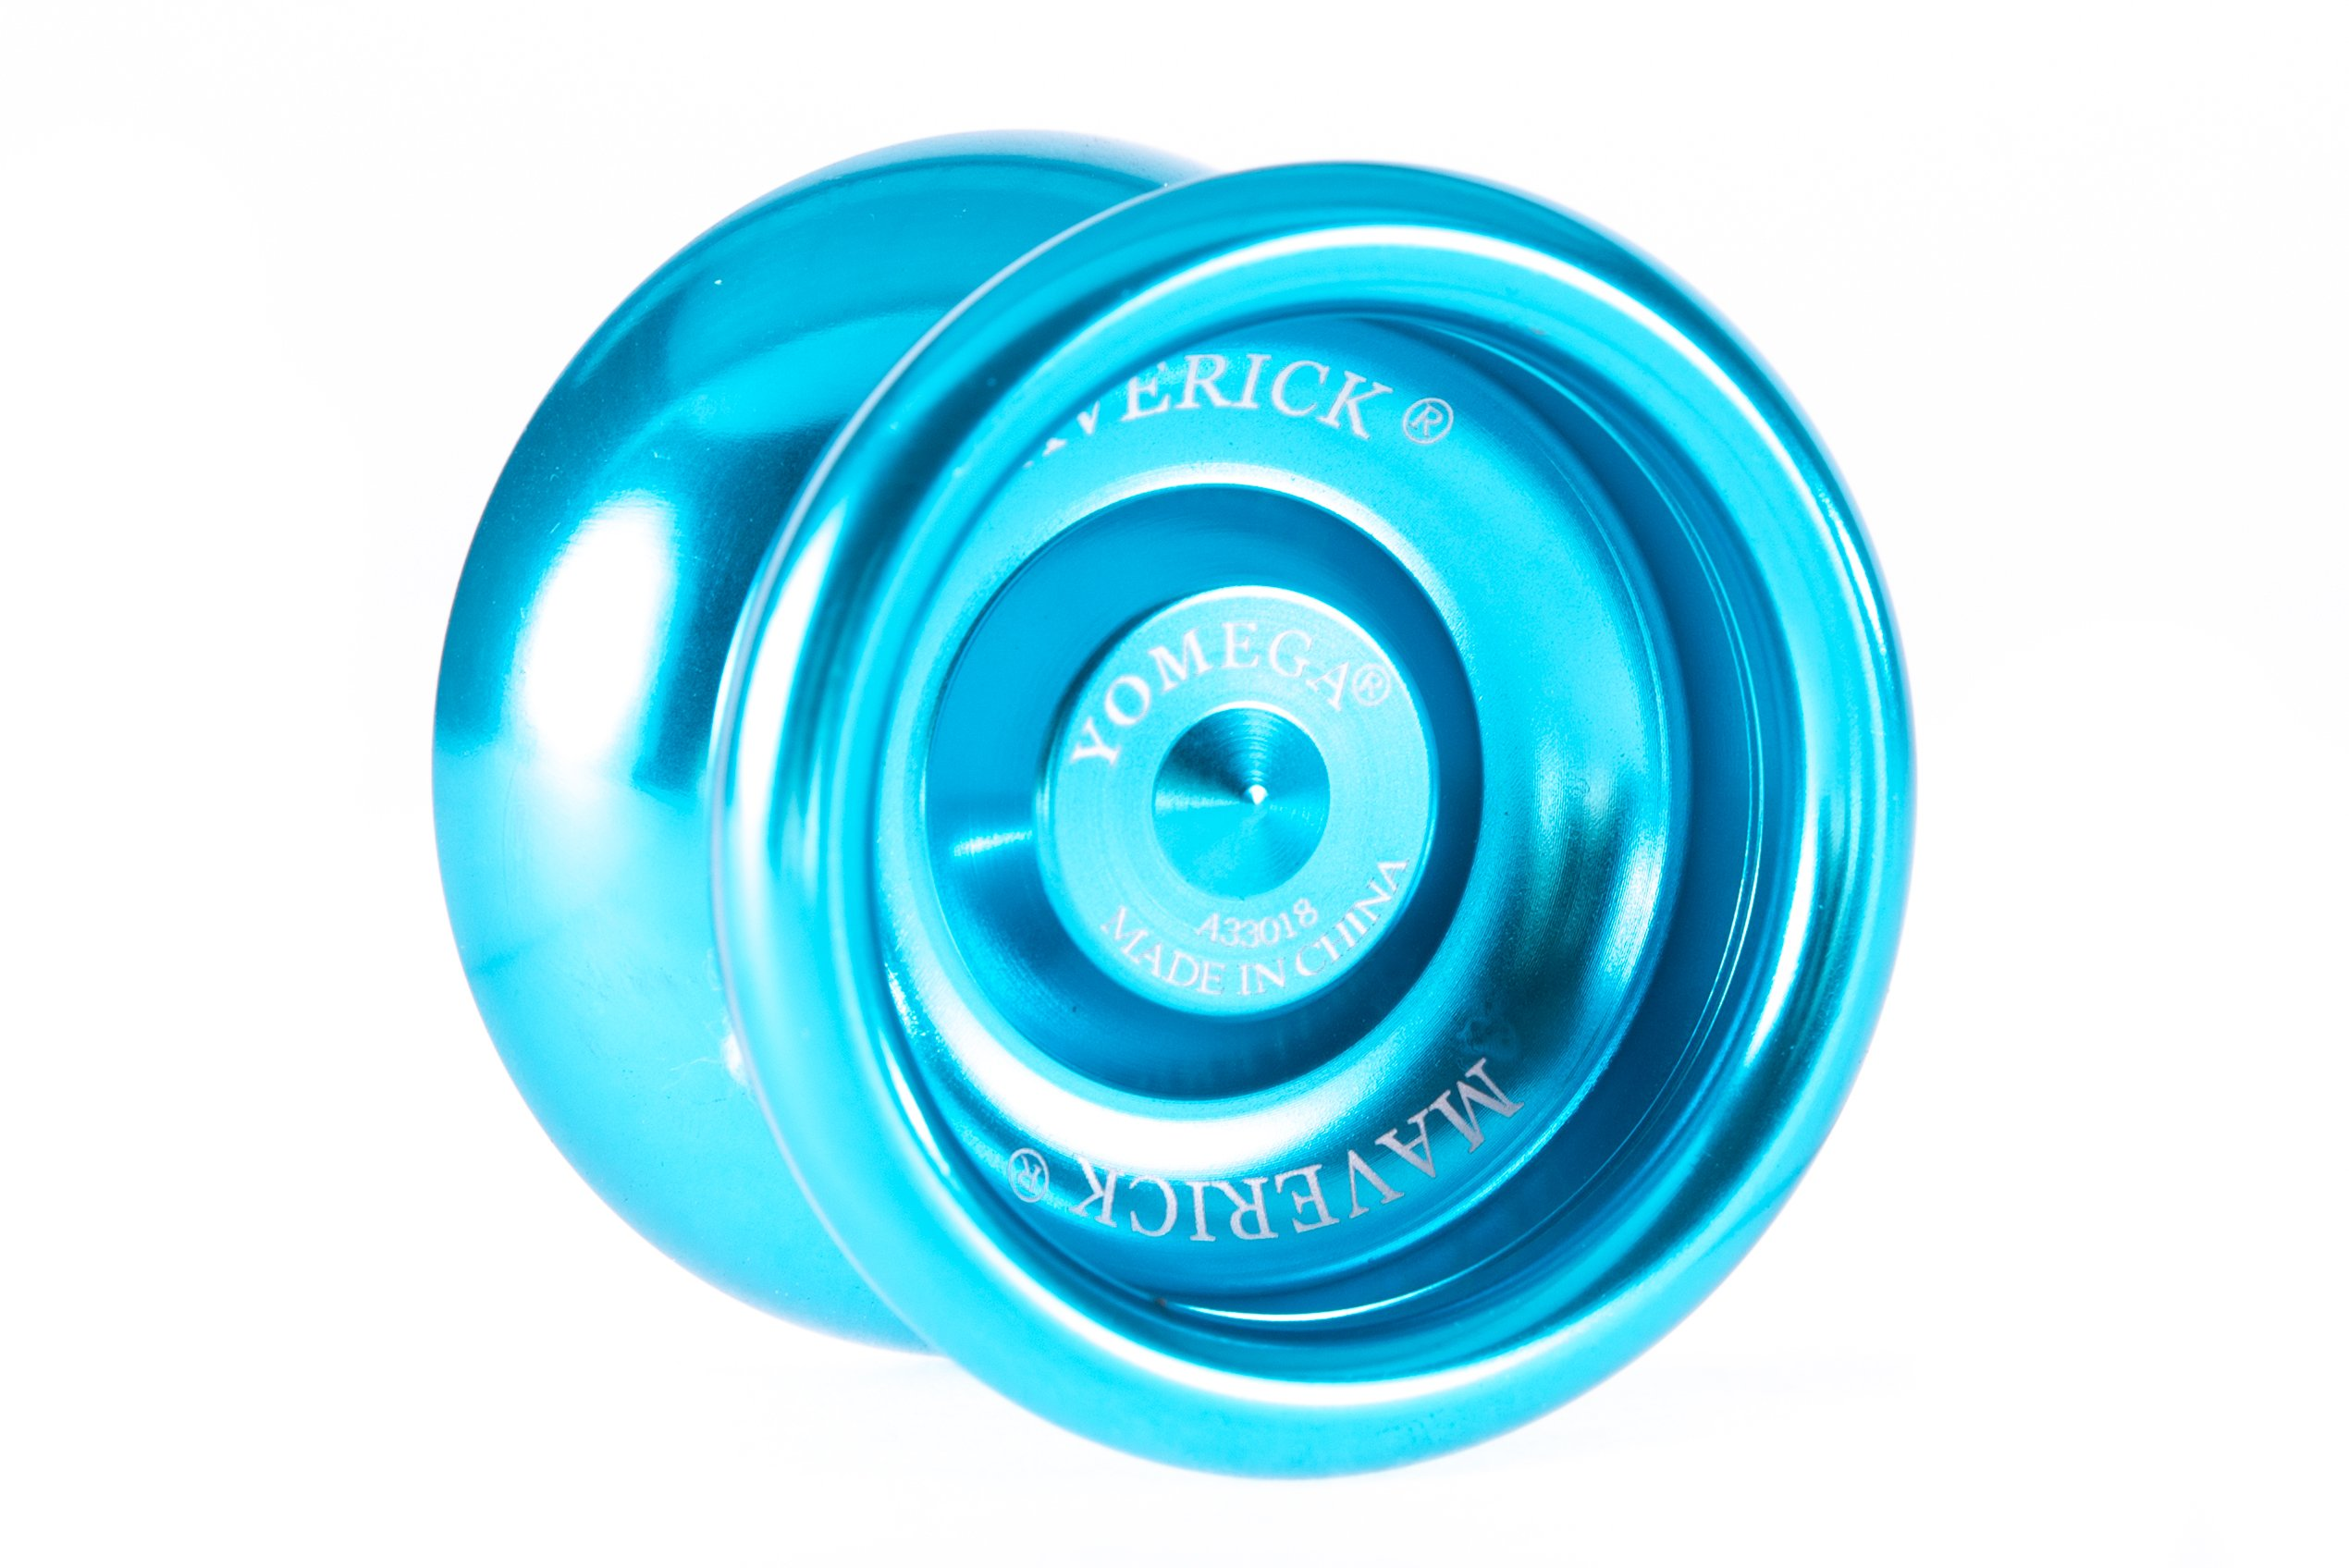 Yomega Maverick -Professional Aluminum Metal Yoyo for Kids and Beginners with C Size Ball Bearing for Advanced yo yo Tricks and Responsive Return (Colors May Vary) by Yomega